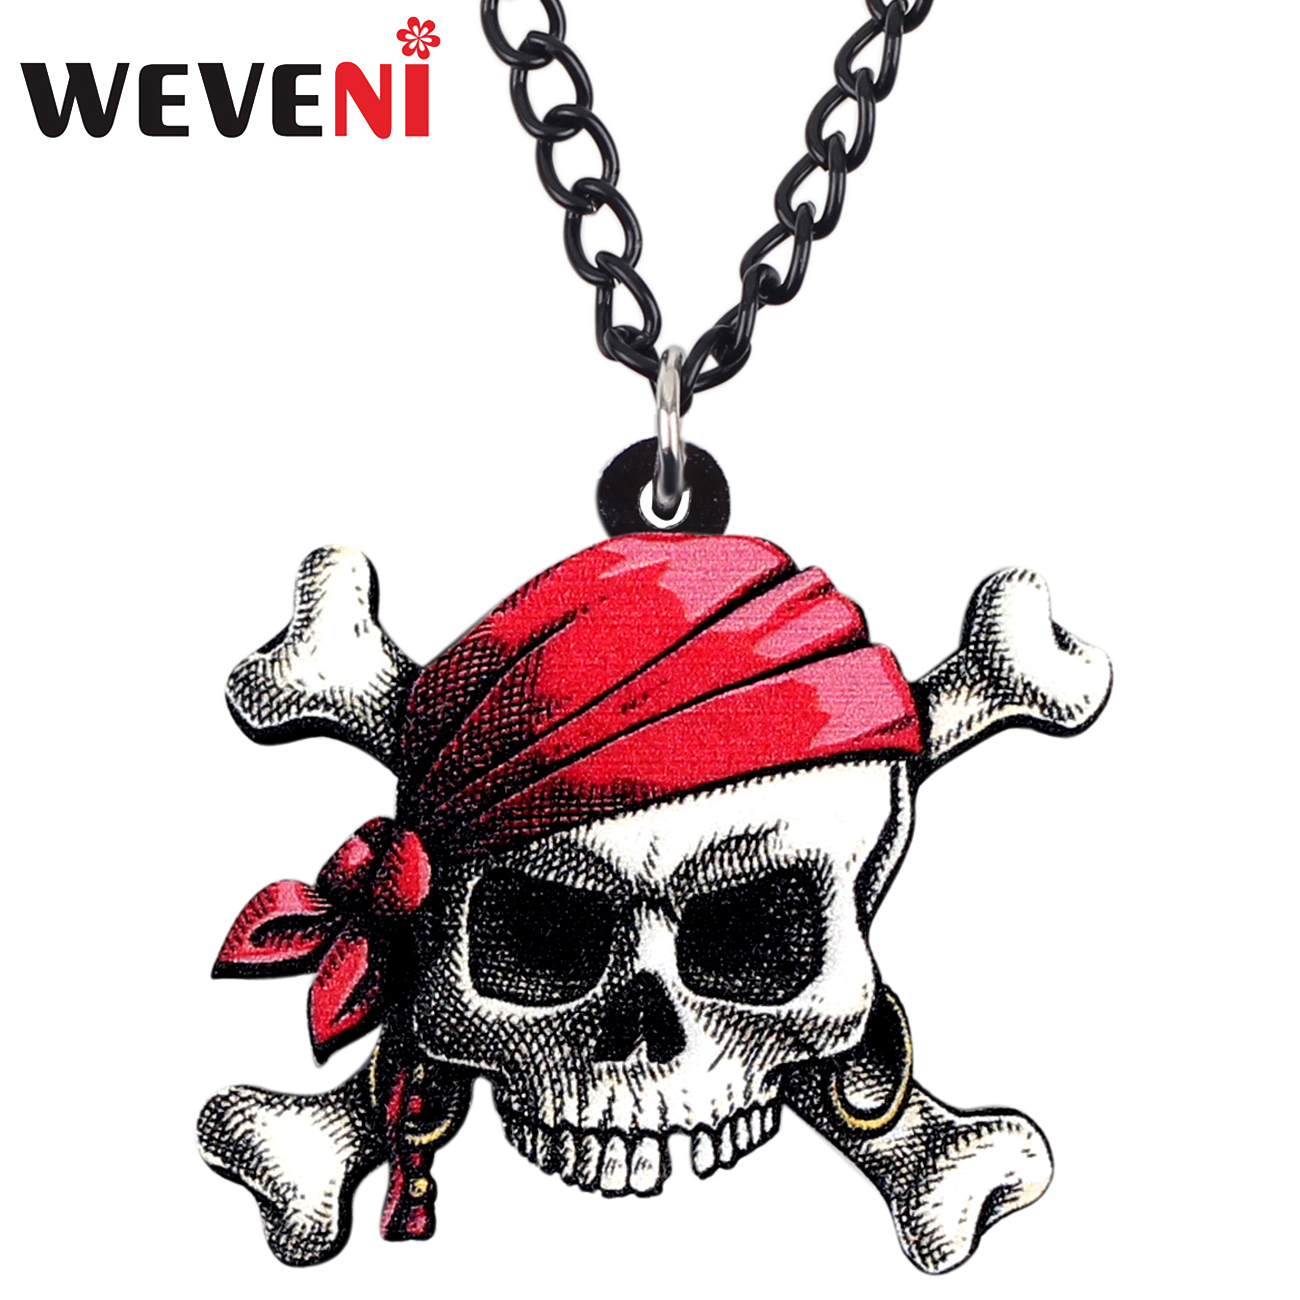 WEVENI Acrylic Halloween Skull Pirate Necklace Pendant Choker Trendy Punk Jewelry For Women Girls Teens Gift Charm Wholesale New image